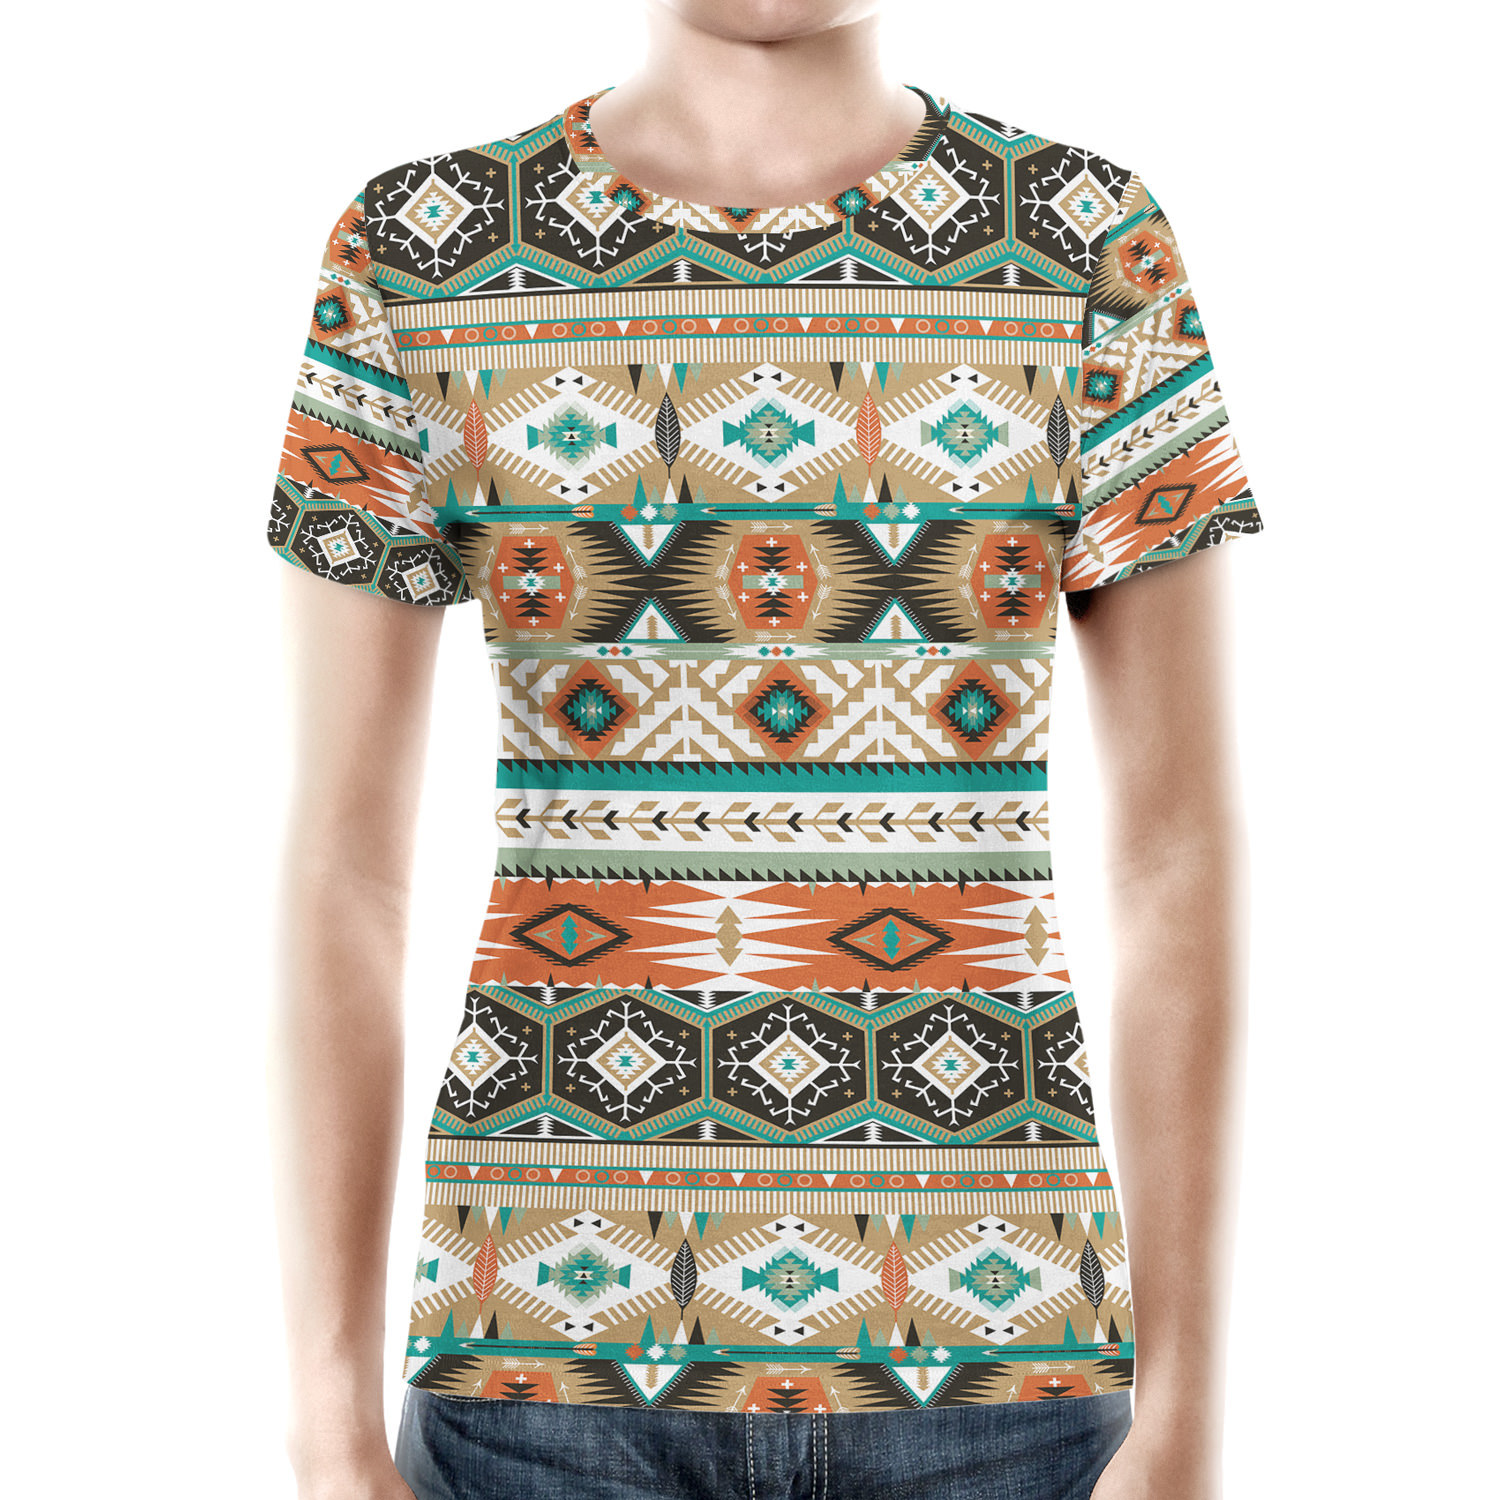 You searched for: aztec print t shirt! Etsy is the home to thousands of handmade, vintage, and one-of-a-kind products and gifts related to your search. No matter what you're looking for or where you are in the world, our global marketplace of sellers can help you find unique and affordable options. Let's get started!